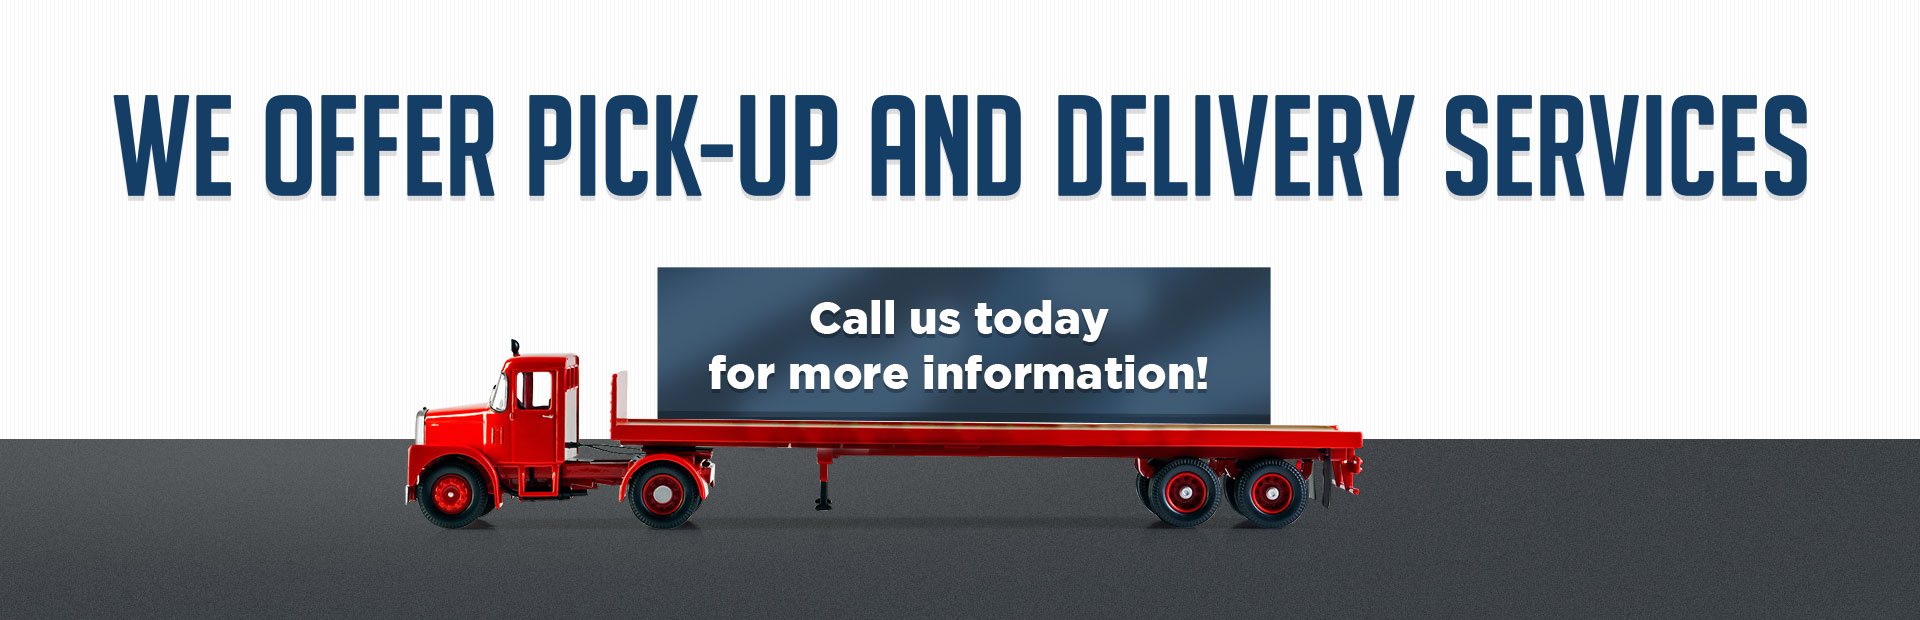 We offer pick-up and delivery services! Calls us today for more information!